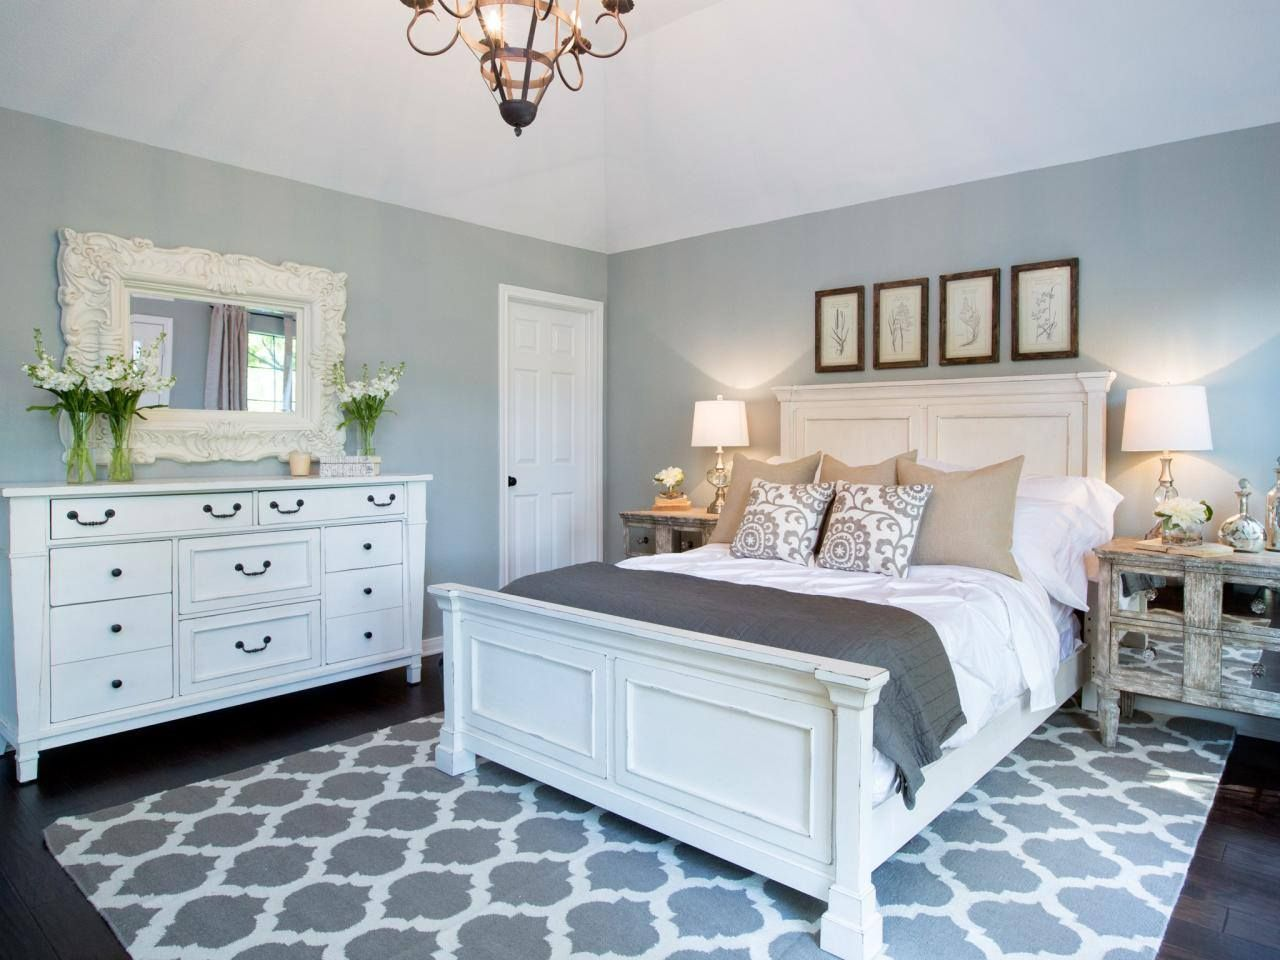 Top 25  best Blue bedroom walls ideas on Pinterest   Blue bedroom colors  Blue  bedrooms and Blue master bedroom. Top 25  best Blue bedroom walls ideas on Pinterest   Blue bedroom